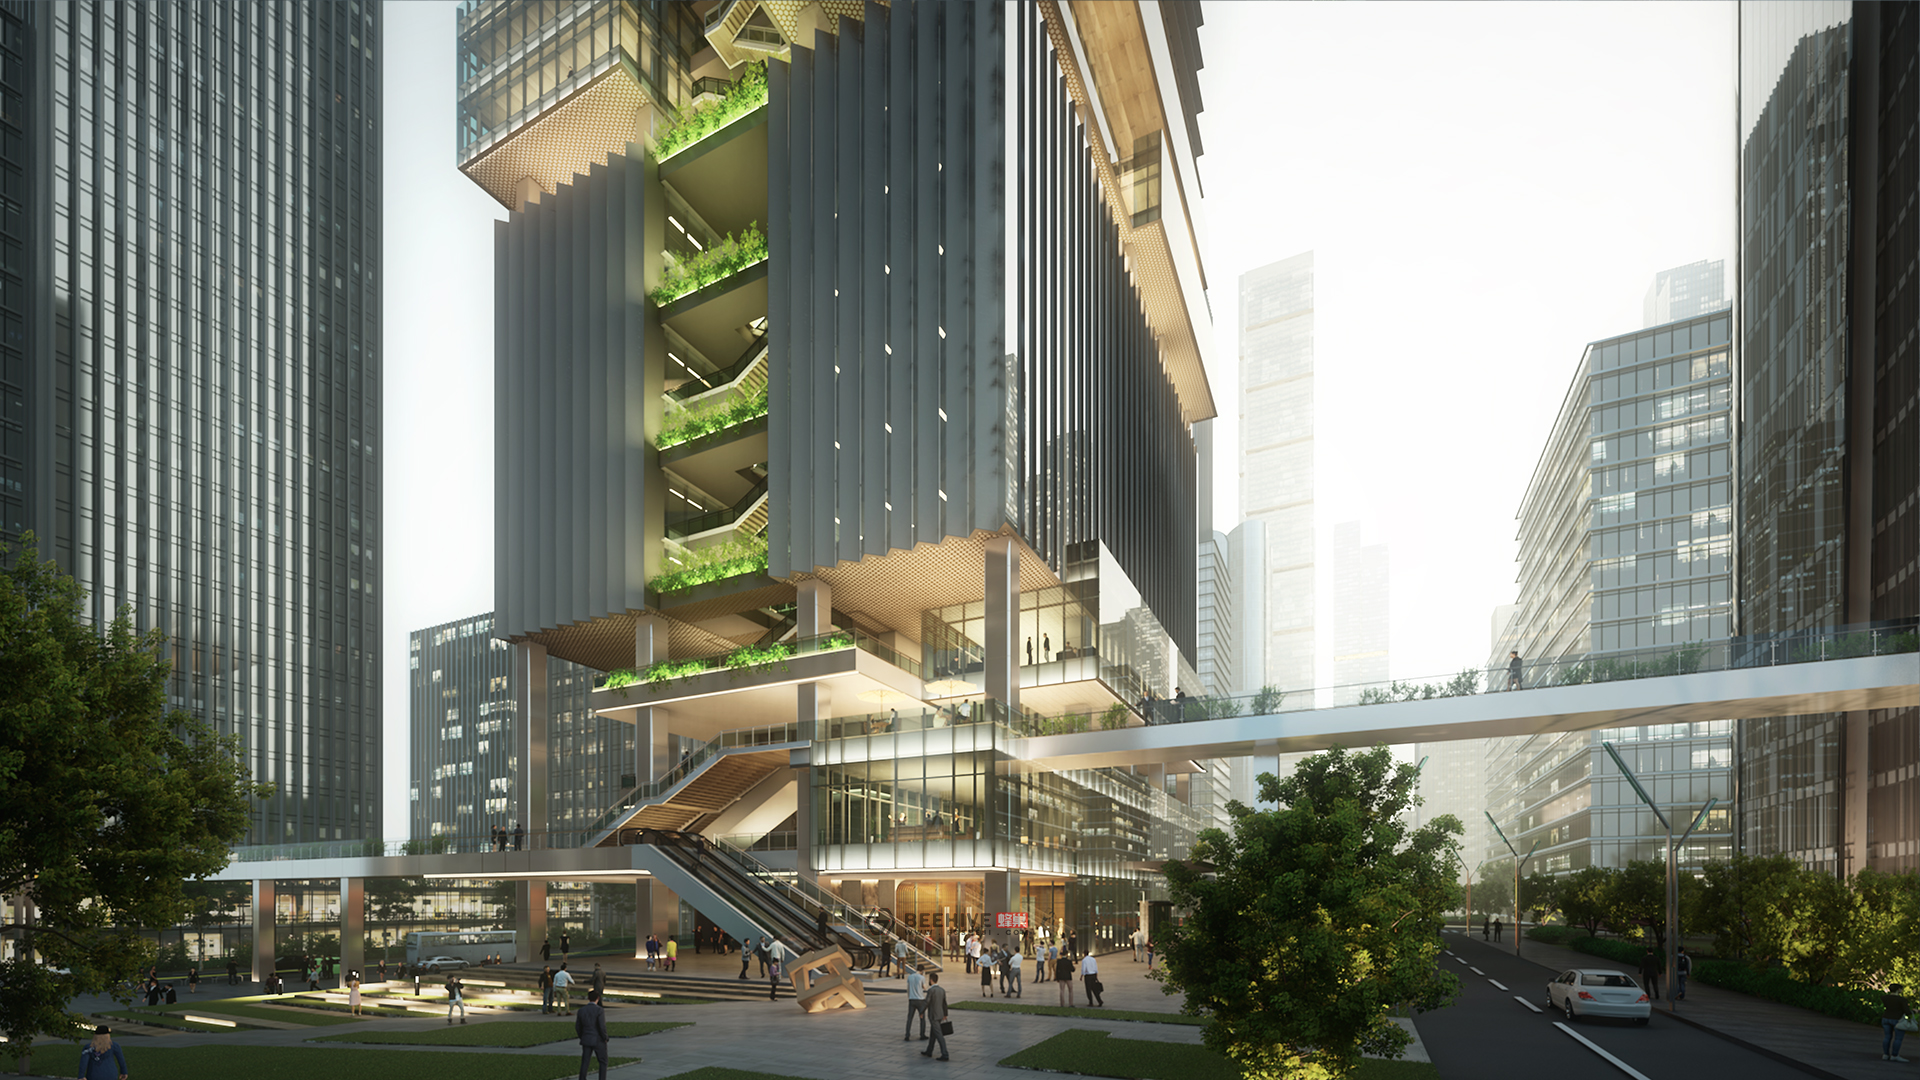 Shenzhen Transsion Tower. Design and Project Architect: Aedas. Client: Shenzhen Transsion Holdings.